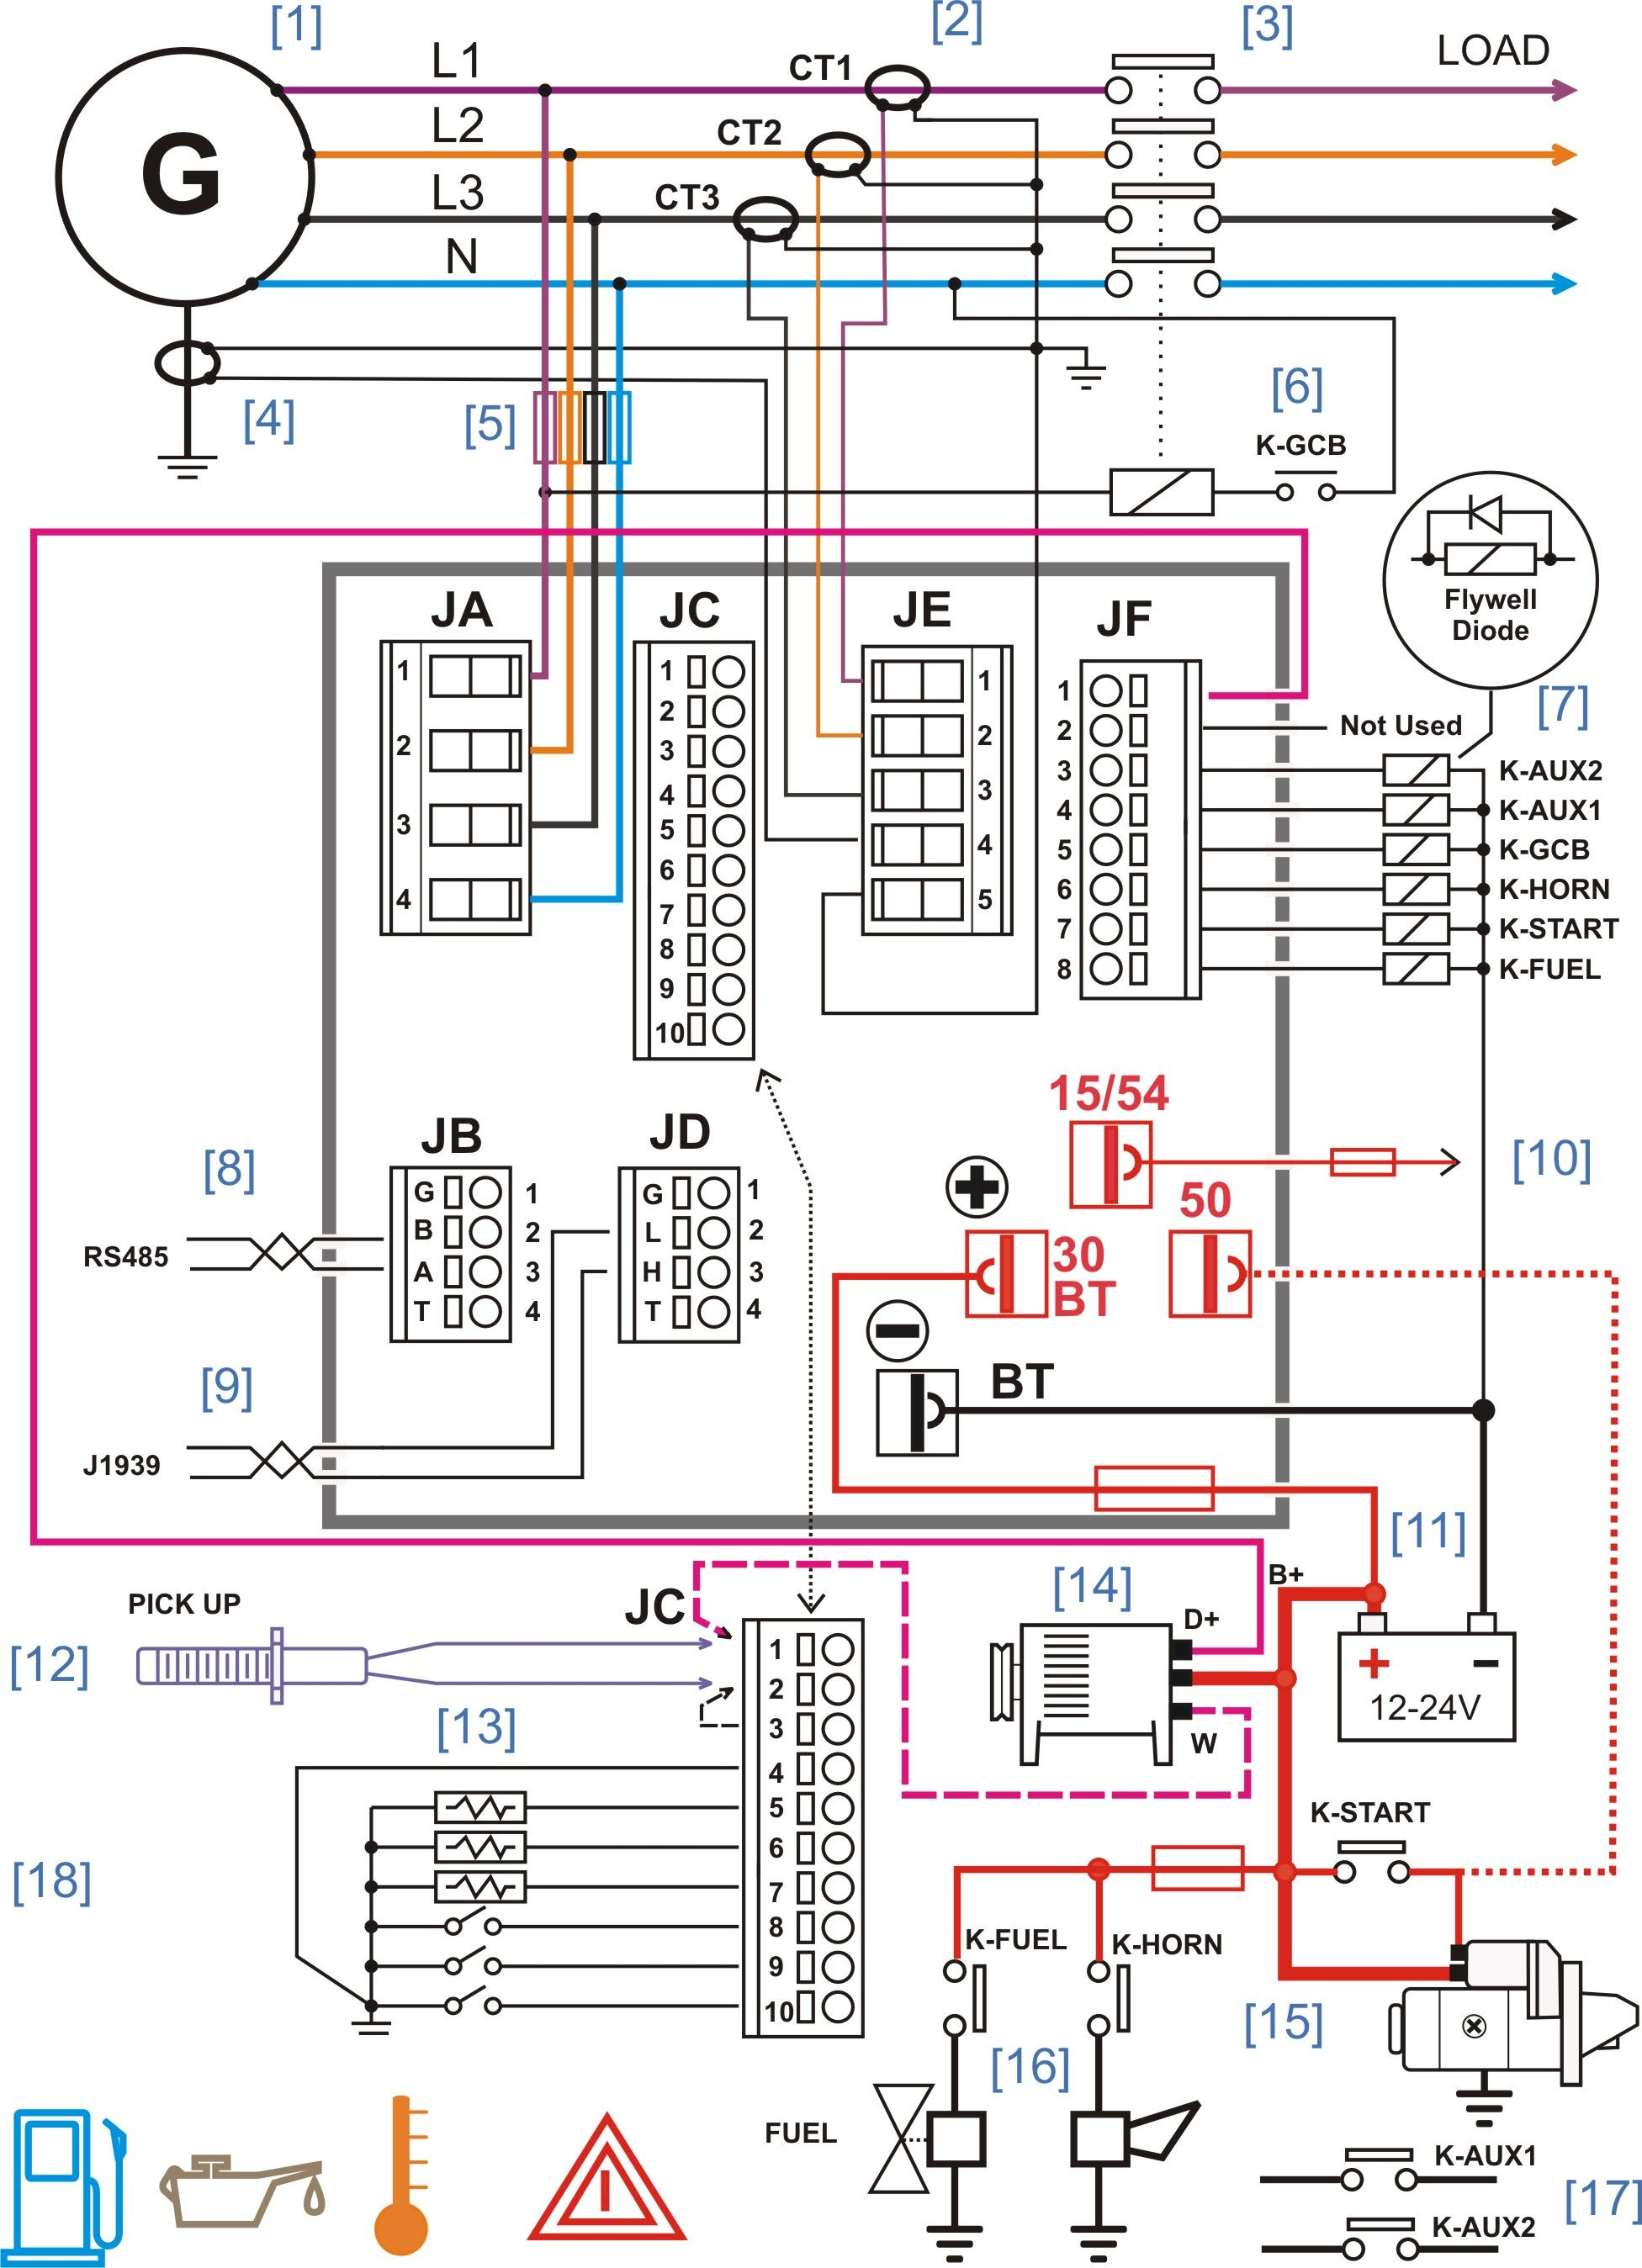 e32695bfa9986573569381a039ba42a6 diesel generator control panel wiring diagram gr pinterest wiring diagram for access control system at eliteediting.co